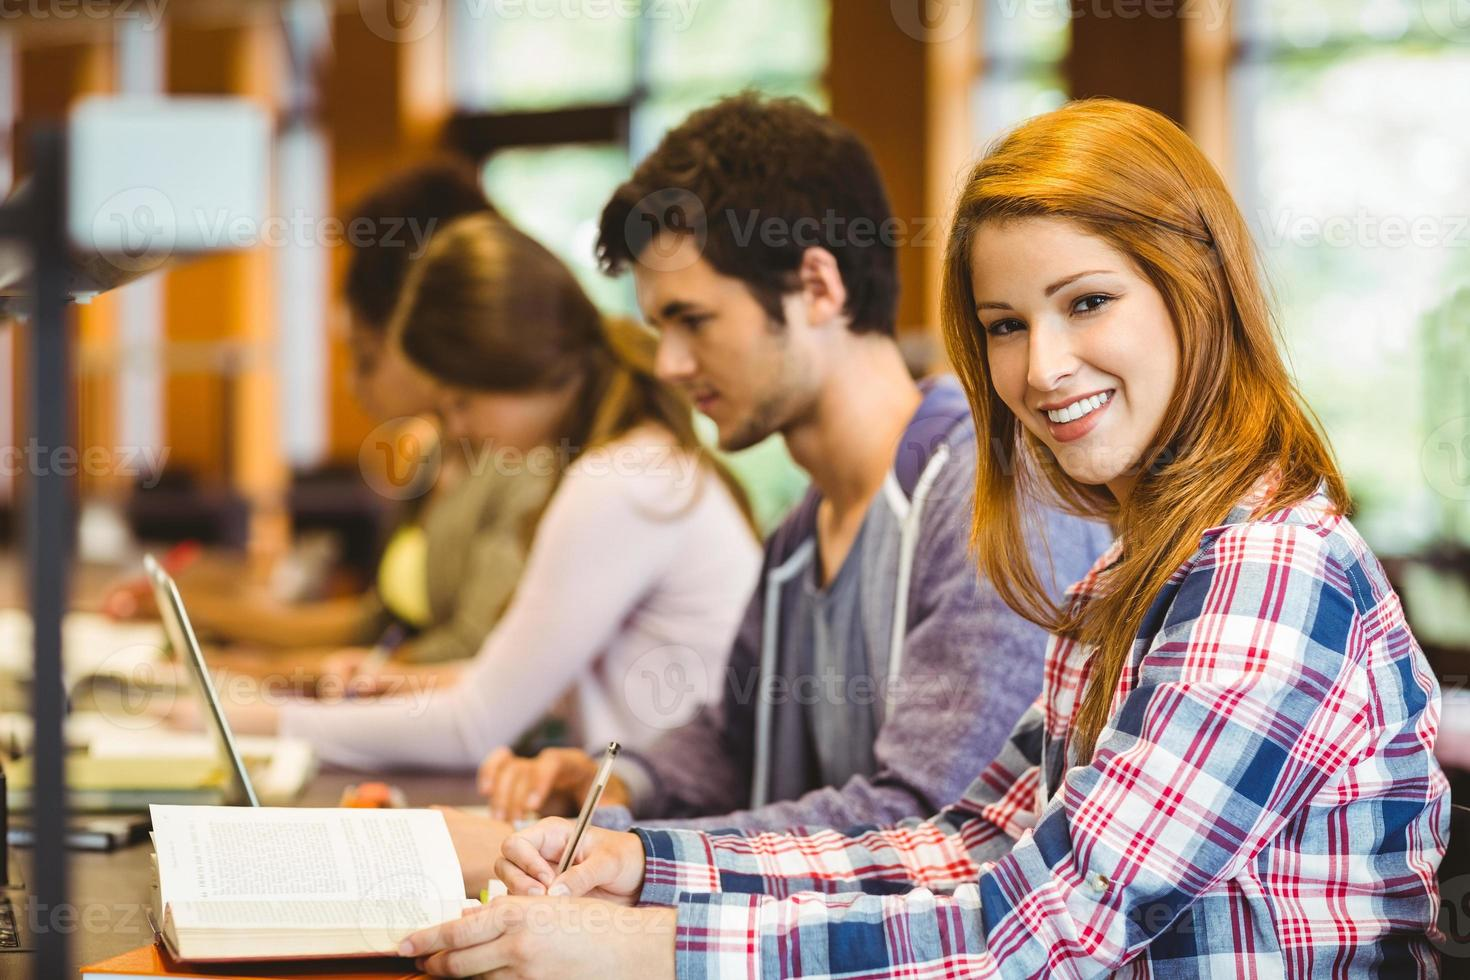 Student looking at camera while studying with classmates photo